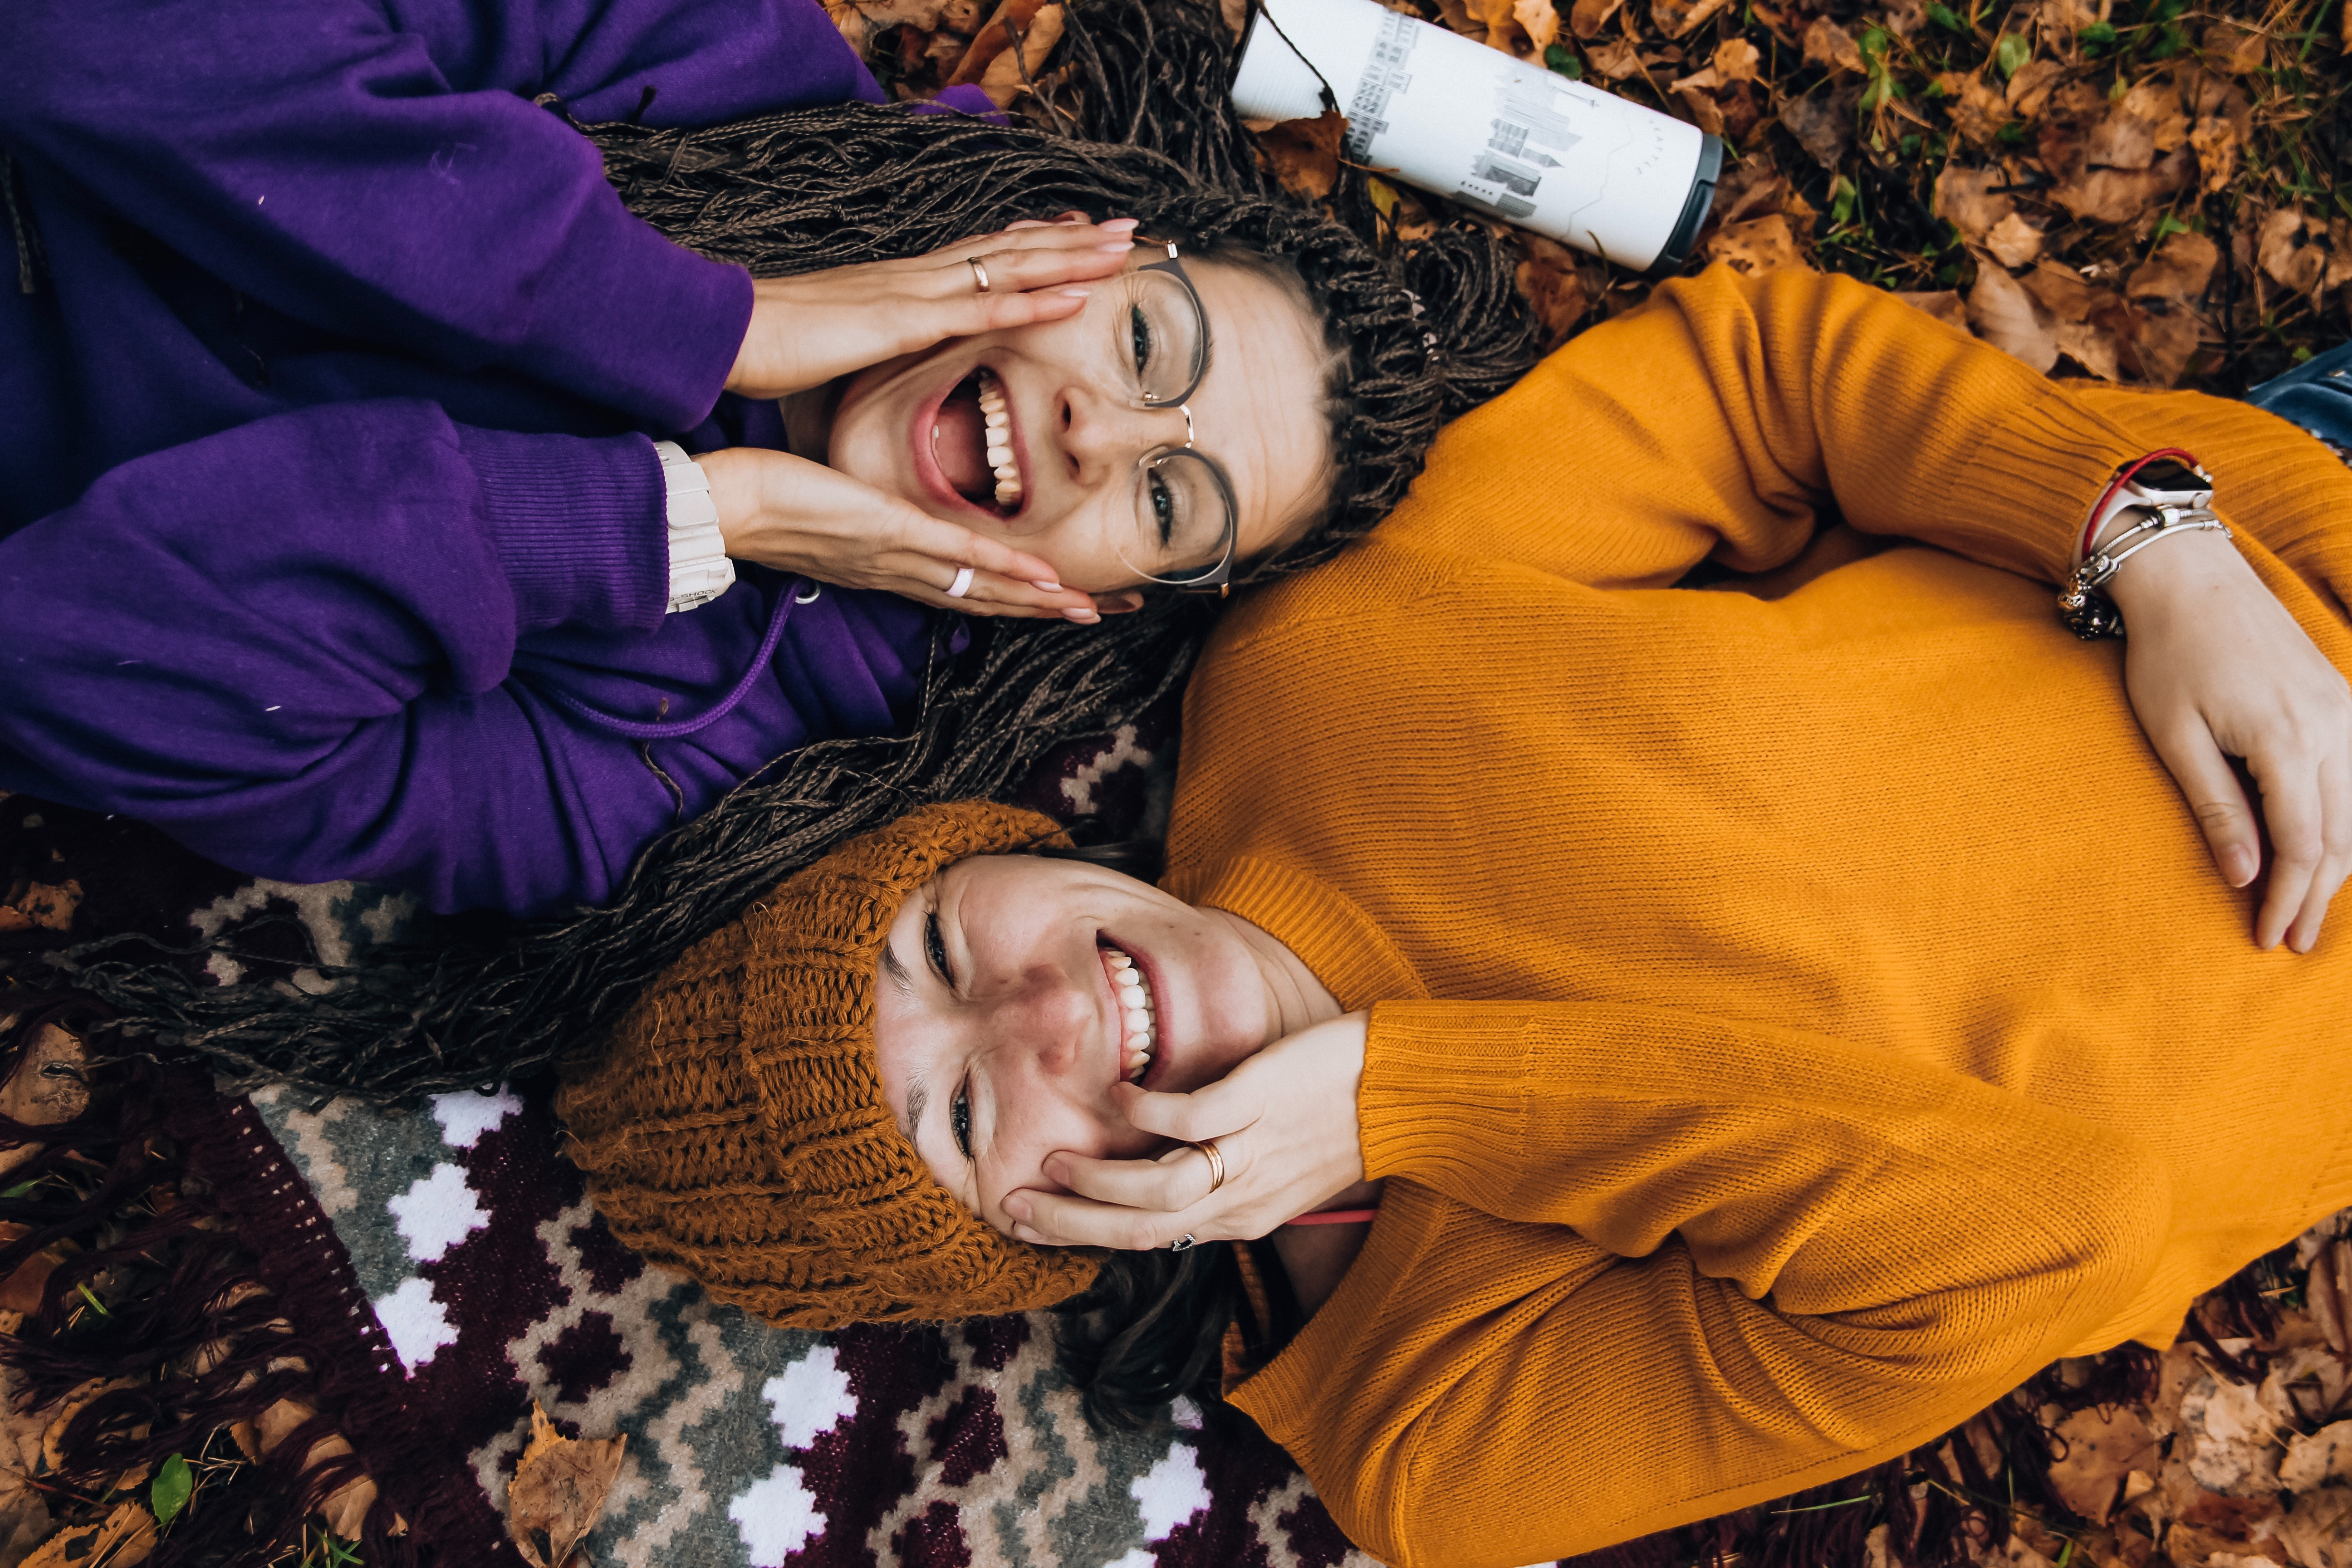 Image of two women wearing long sleeve sweaters lying on the ground together. Both have a smiling and surprised expression on their faces and are on a blanket.